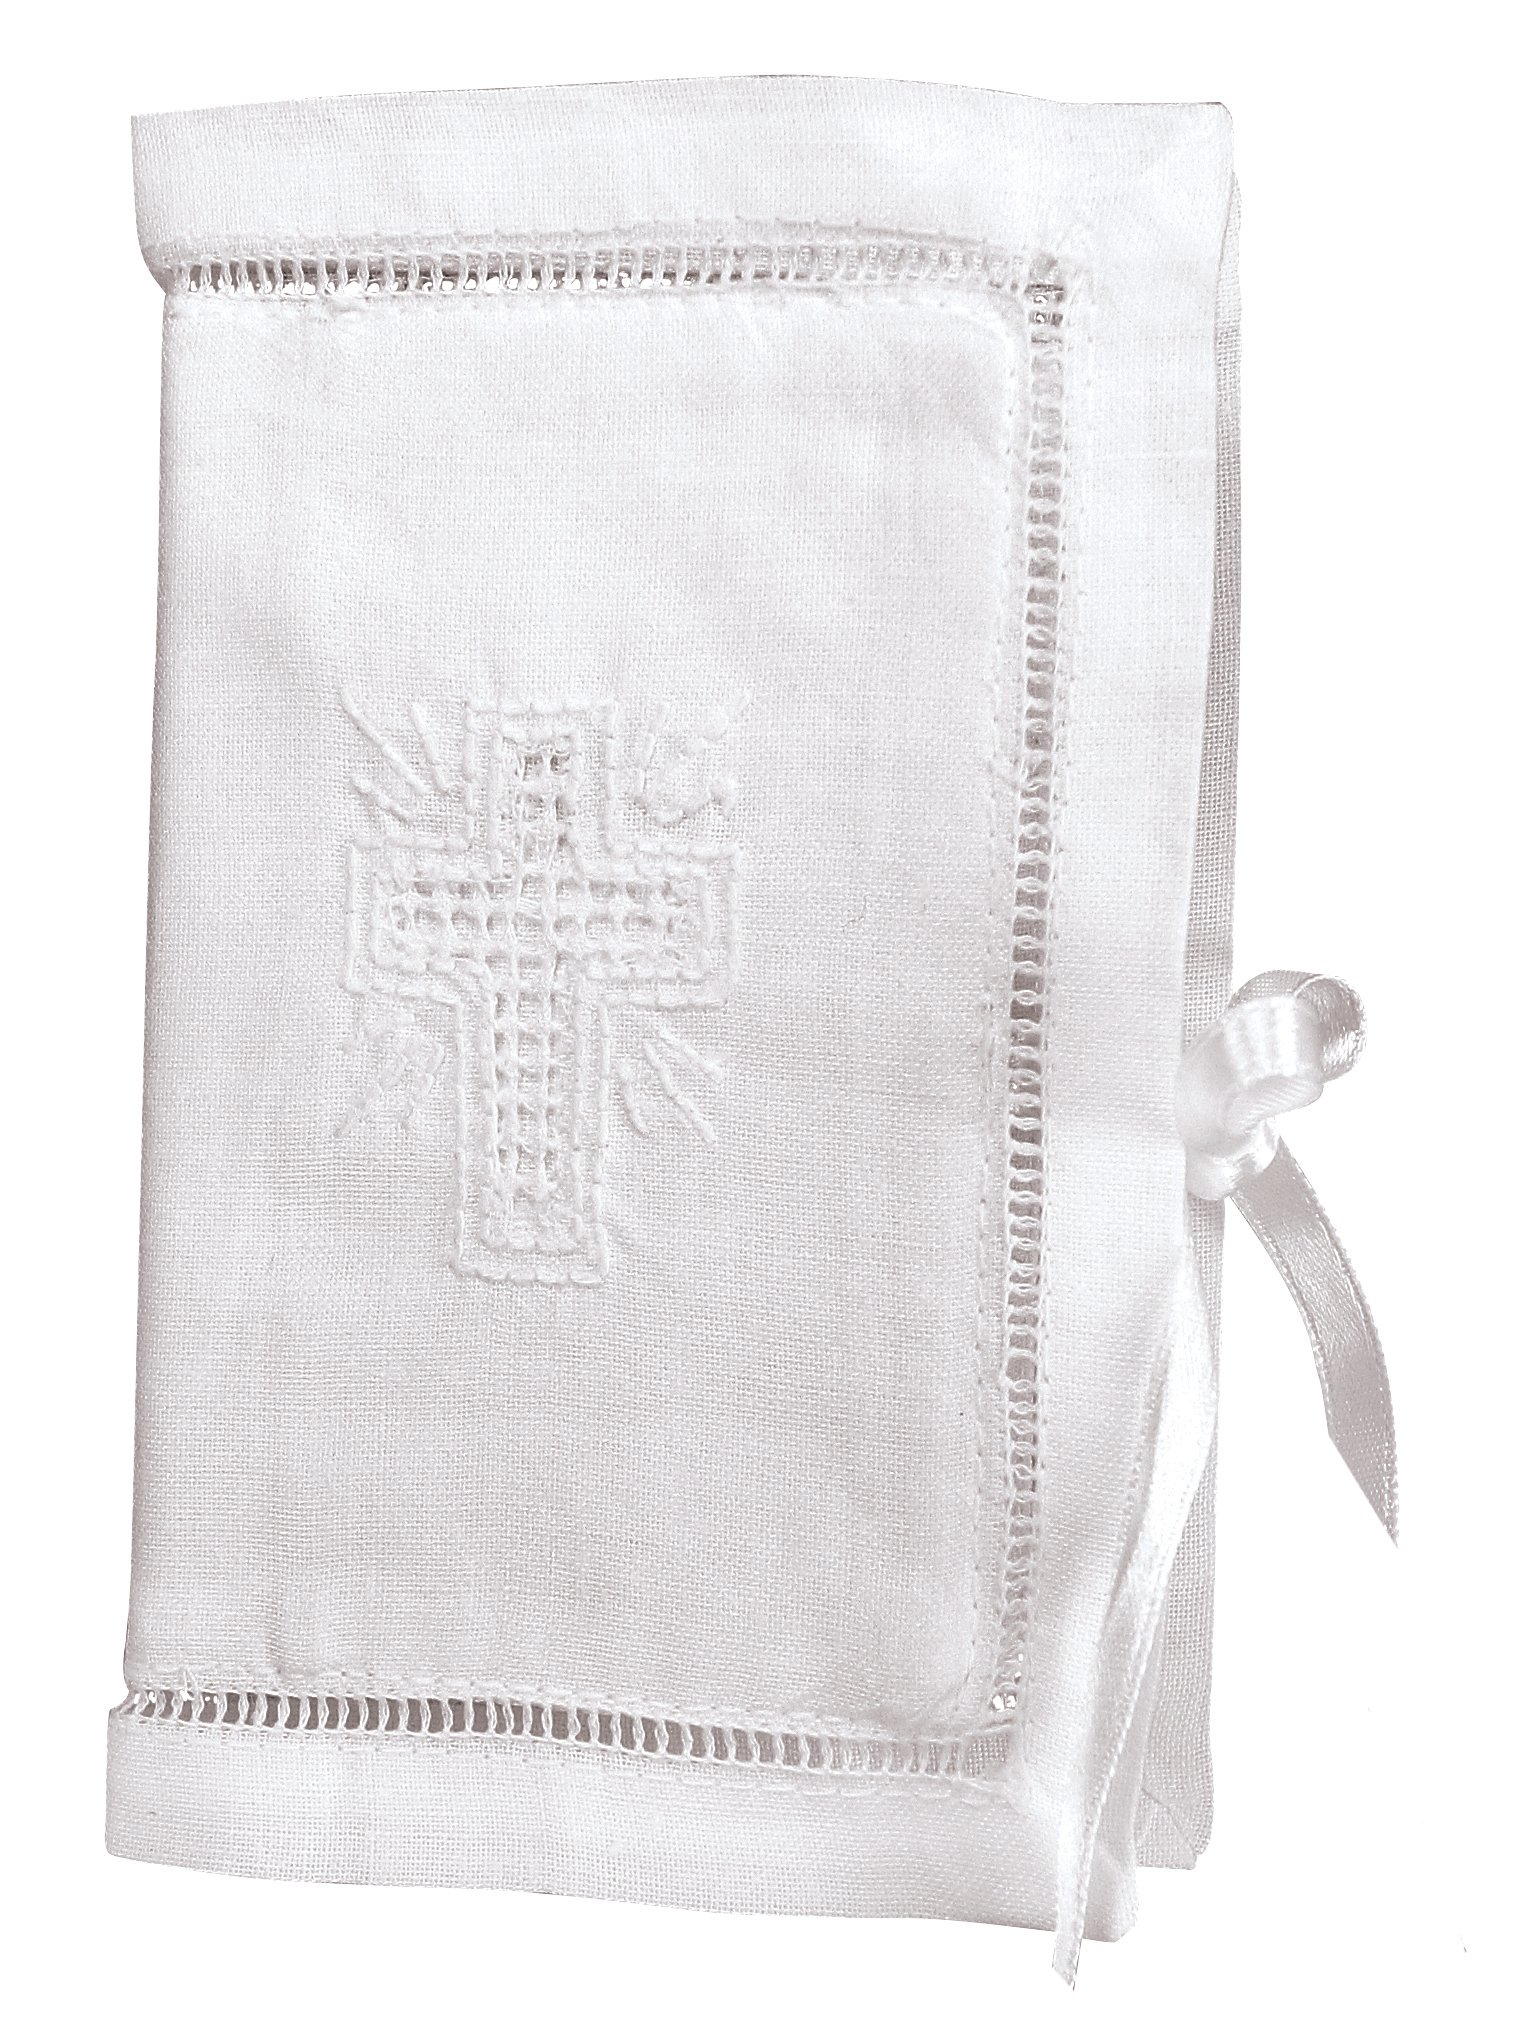 Stephan Baby Keepsake Bible with Embroidered Cover and Ribbon-Tie Closure, White by Stephan Baby (Image #1)